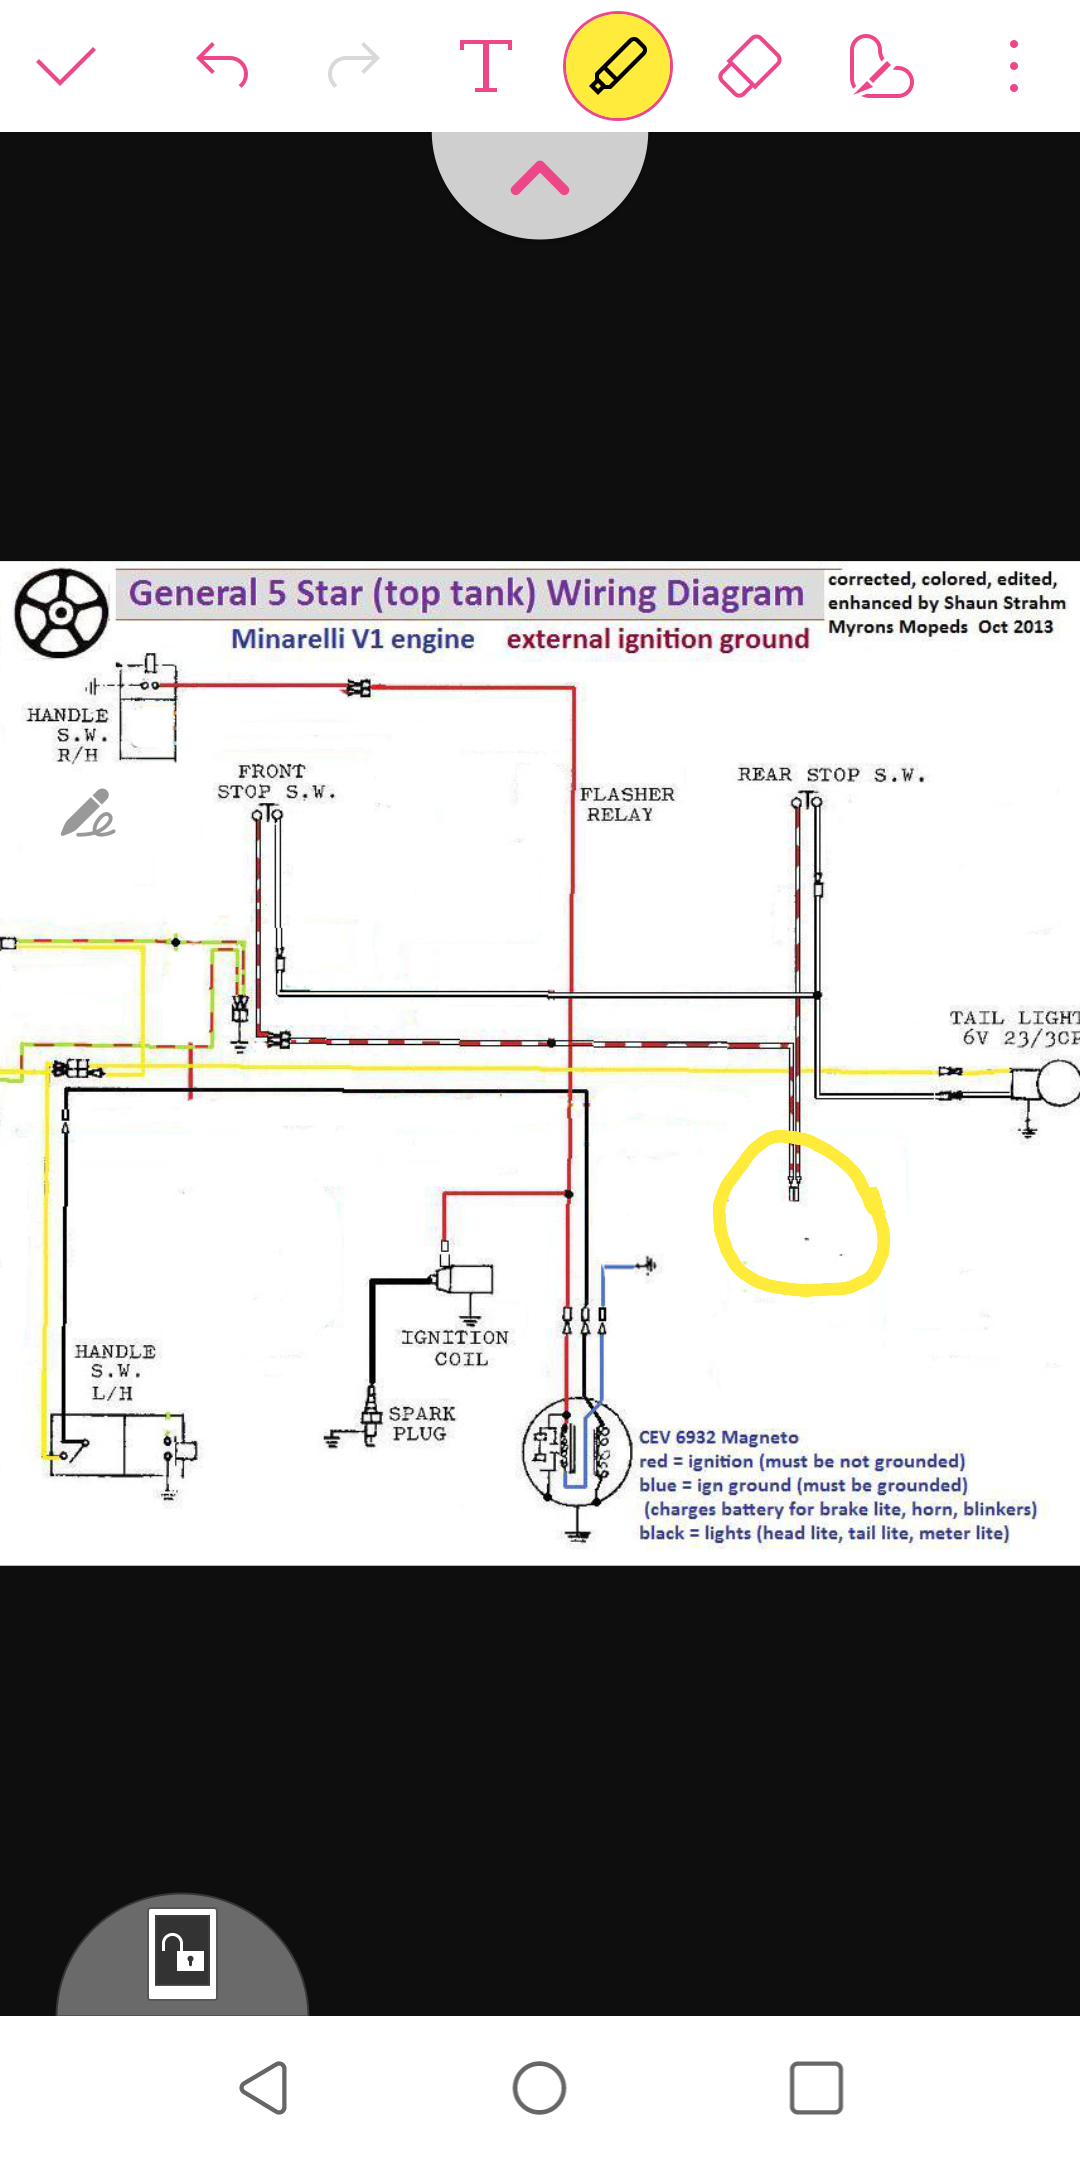 General 5 Star - Wiring Mystery — Moped Army on turn signal flasher diagram, flasher relay, flasher circuit diagram,